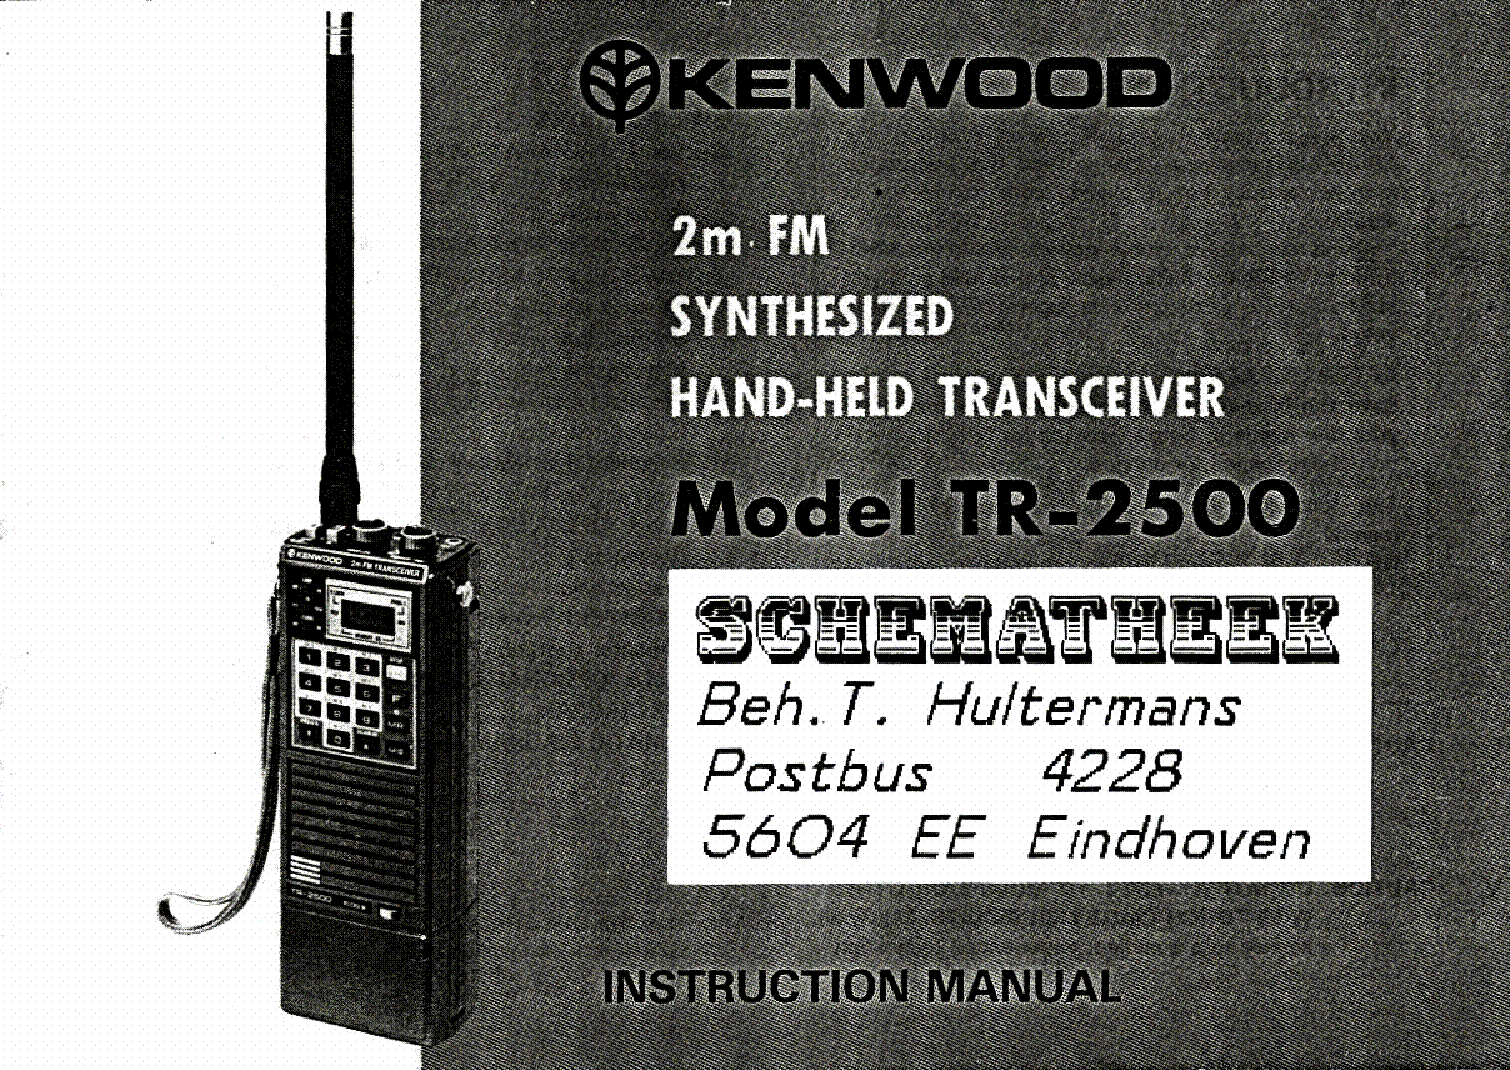 KENWOOD TR-2500 service manual (1st page)